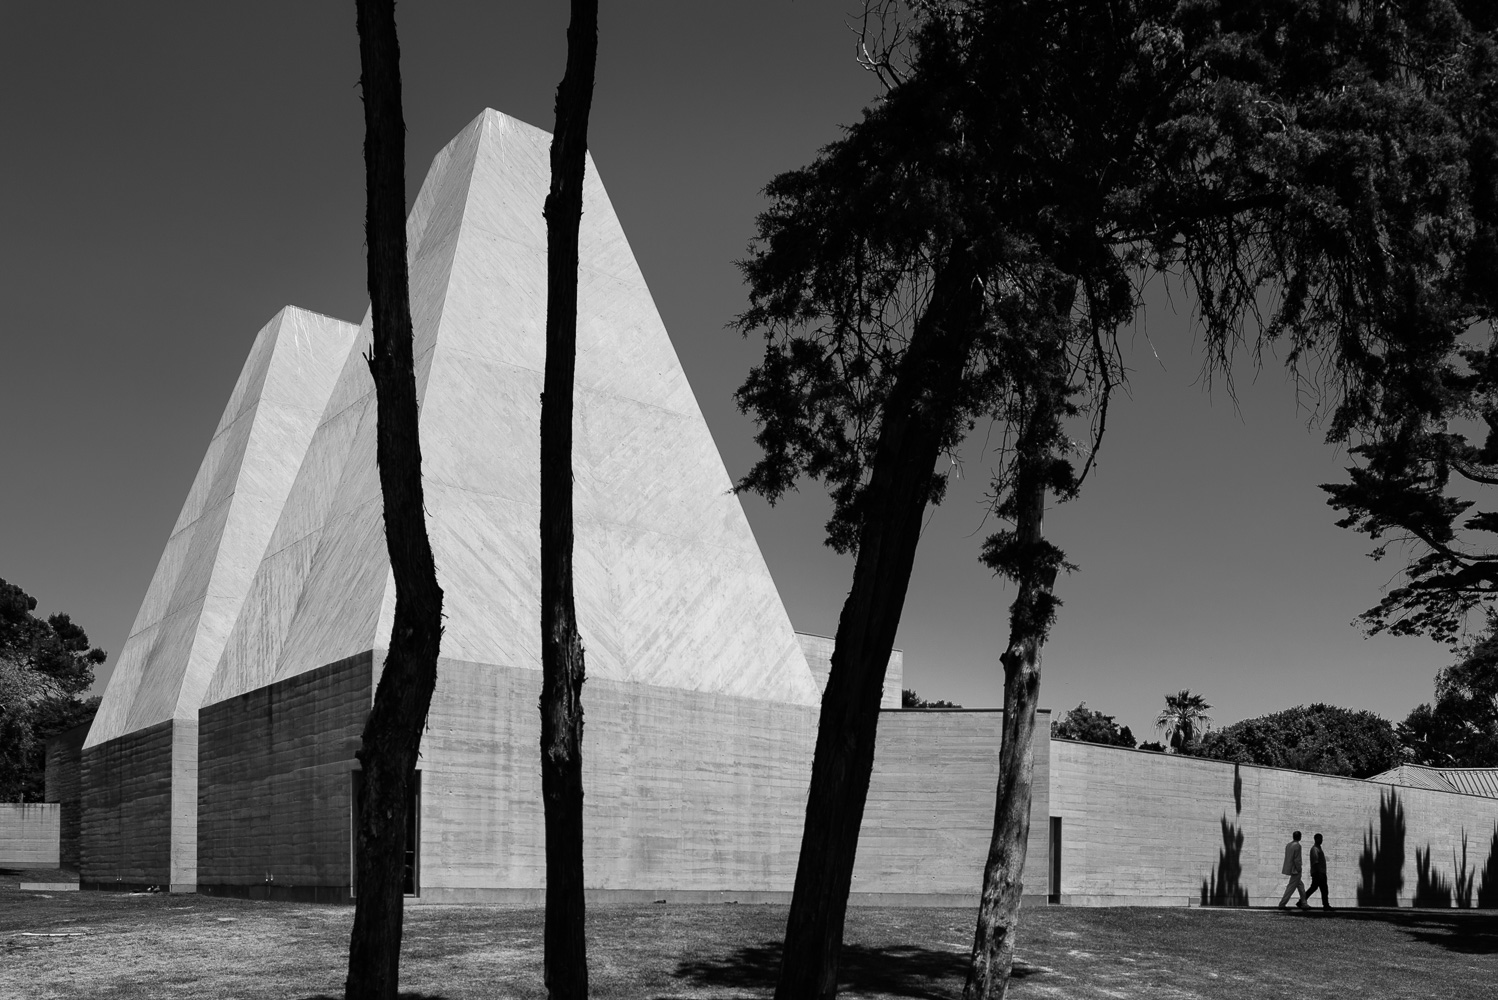 dacian-groza-concrete-black-and-white-architectural-photography-05-0347.jpg